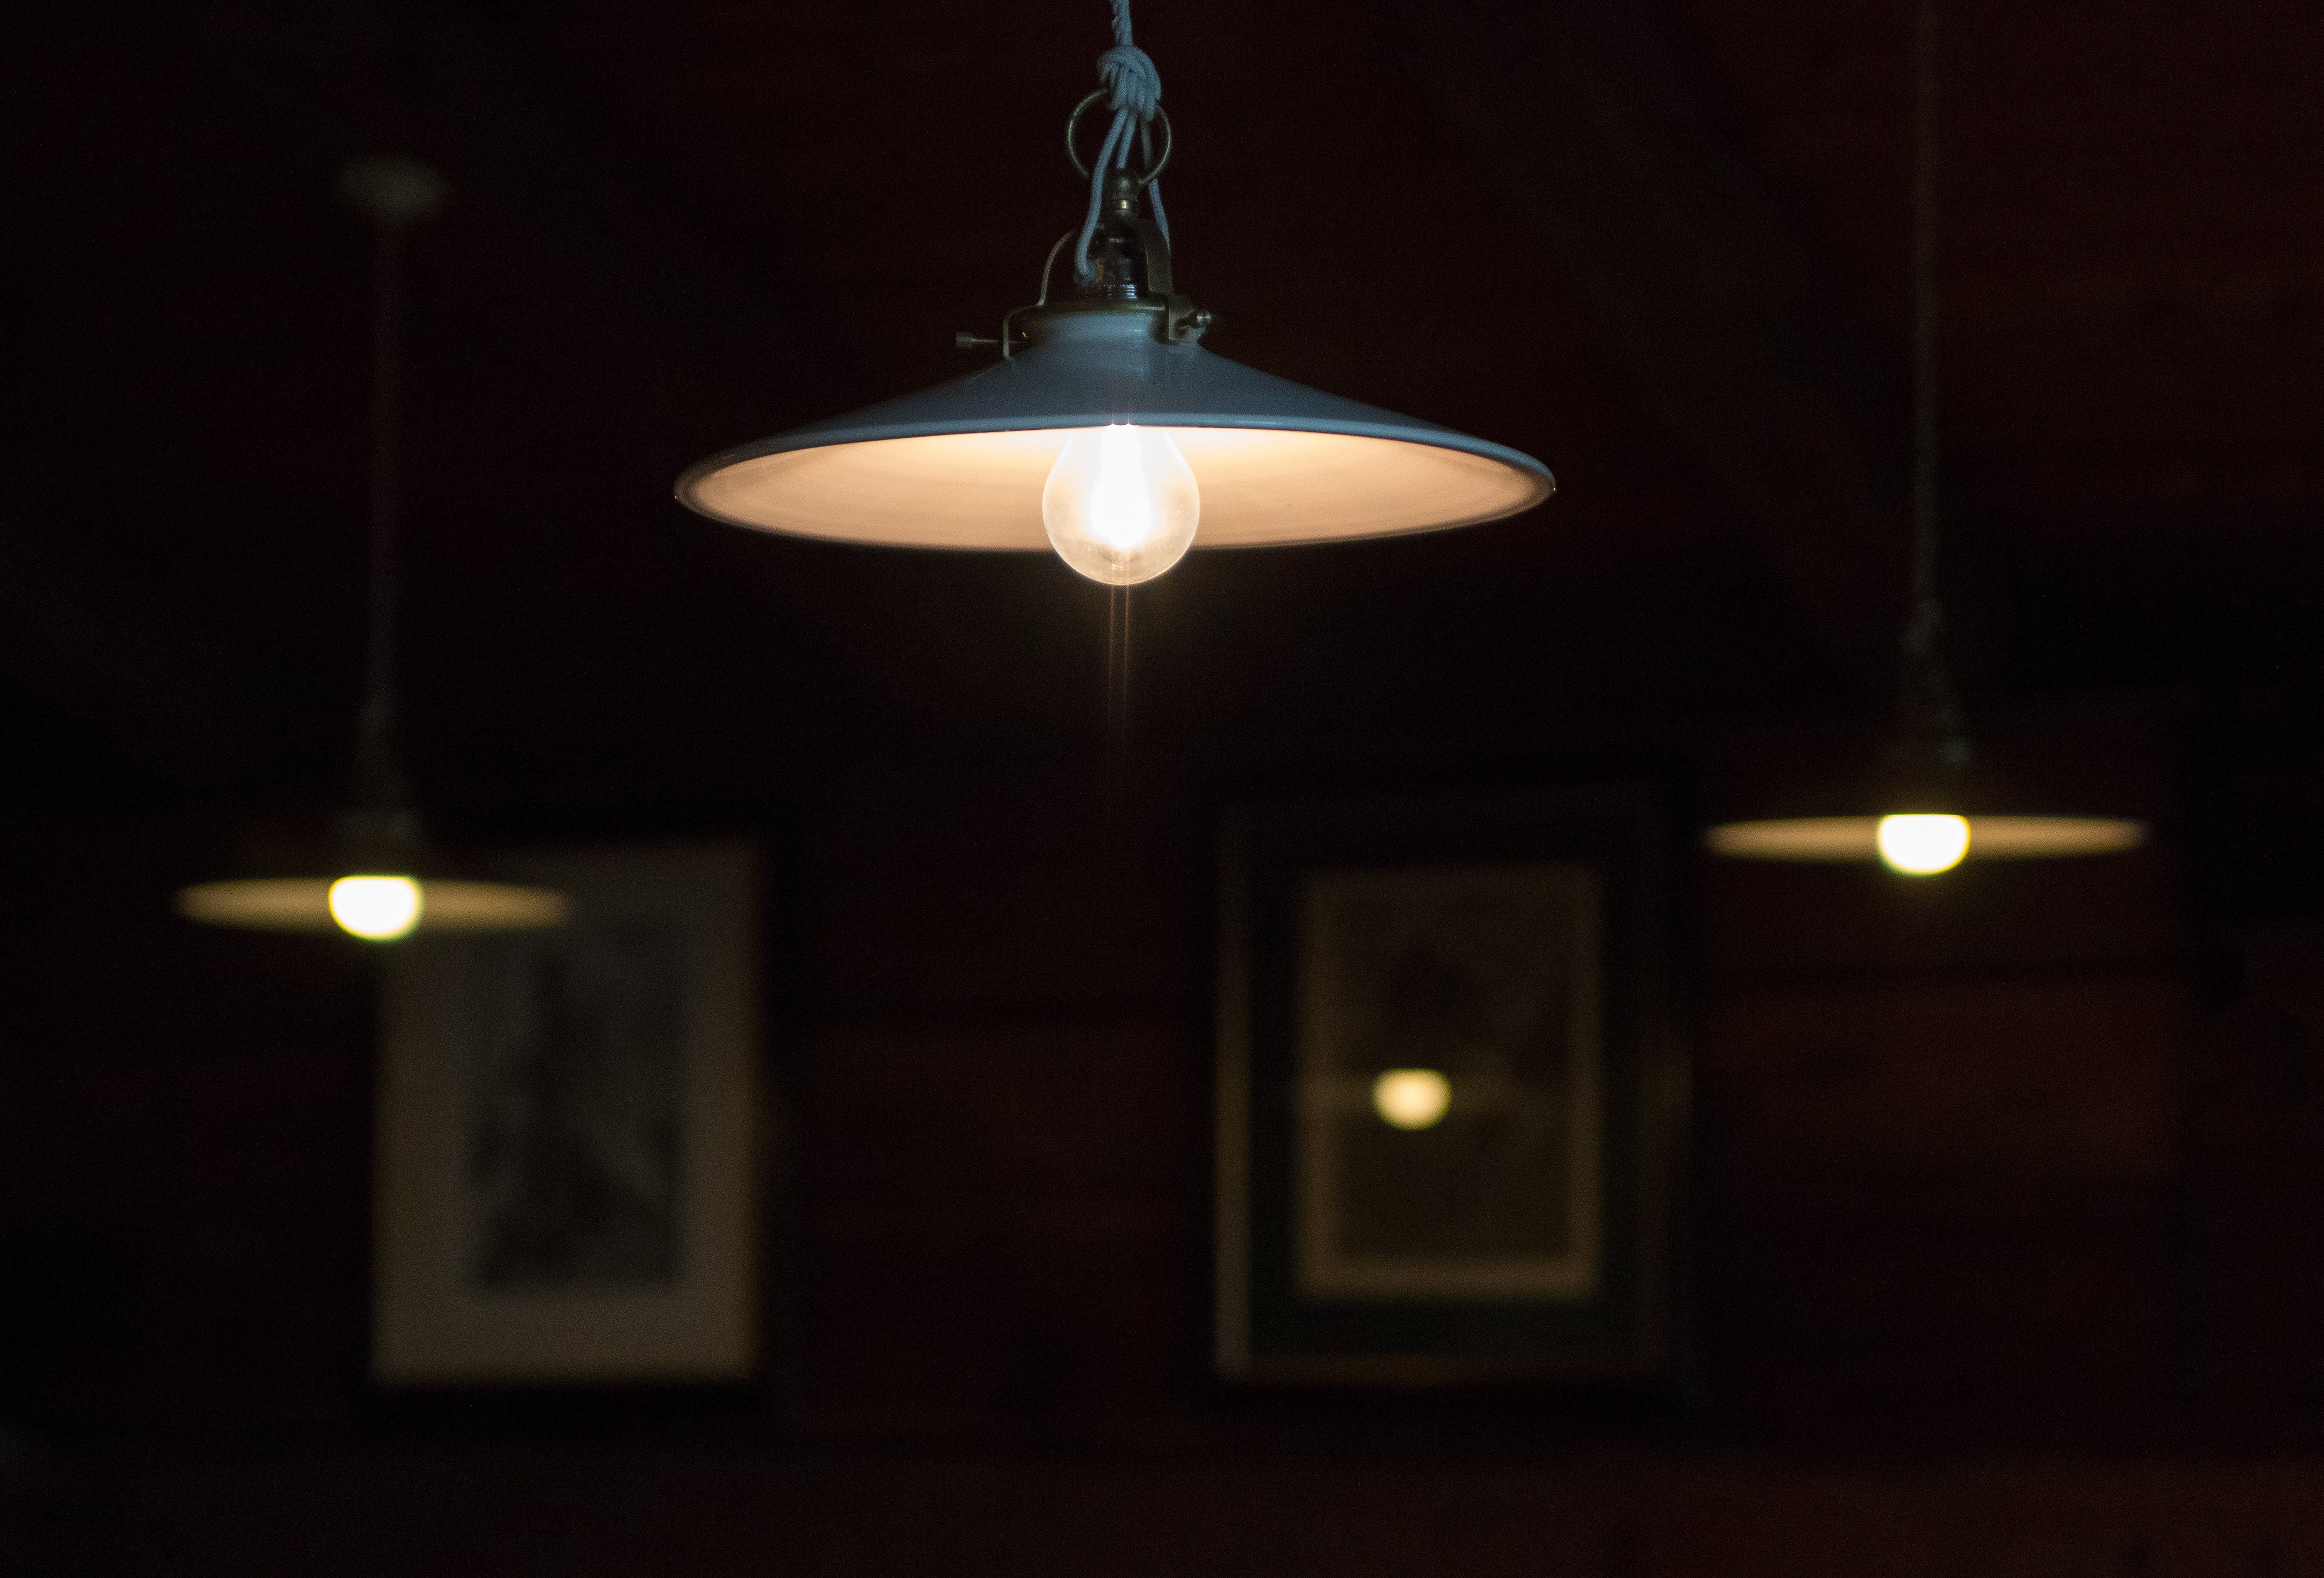 Three Turned-on Pendant Lamps in Room